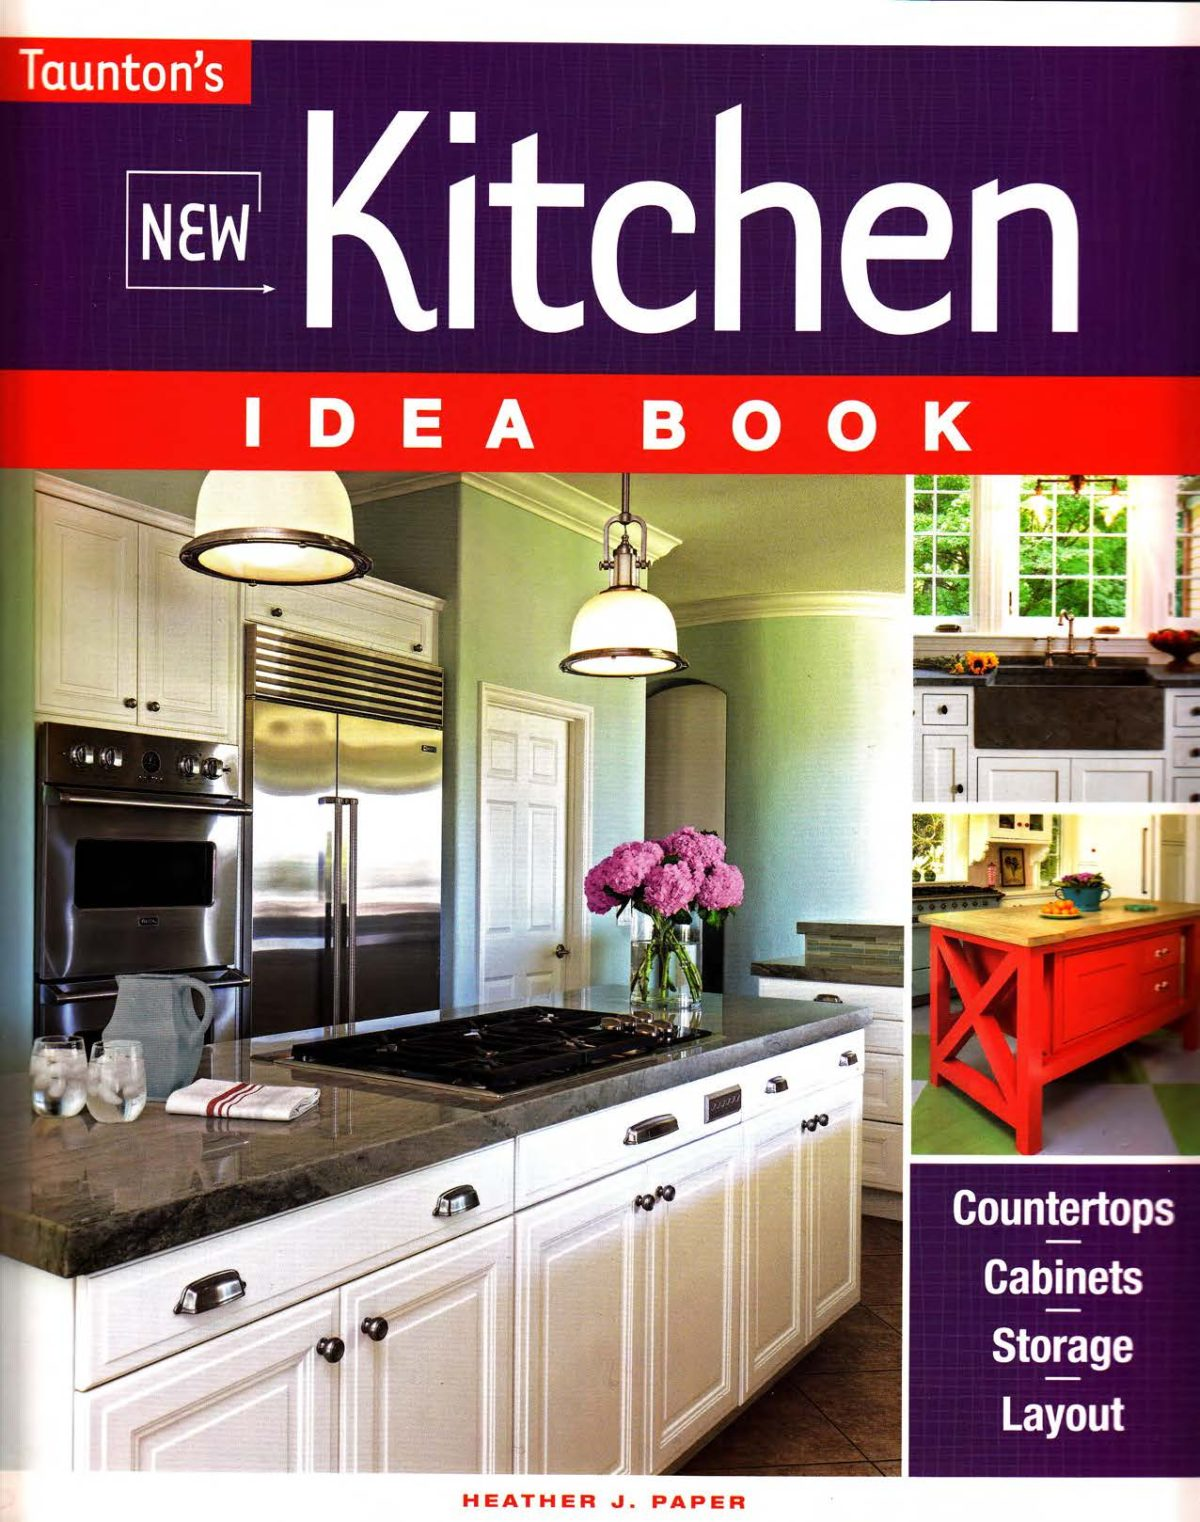 New Kitchen Ideas That Work Book Silver Maple Construction